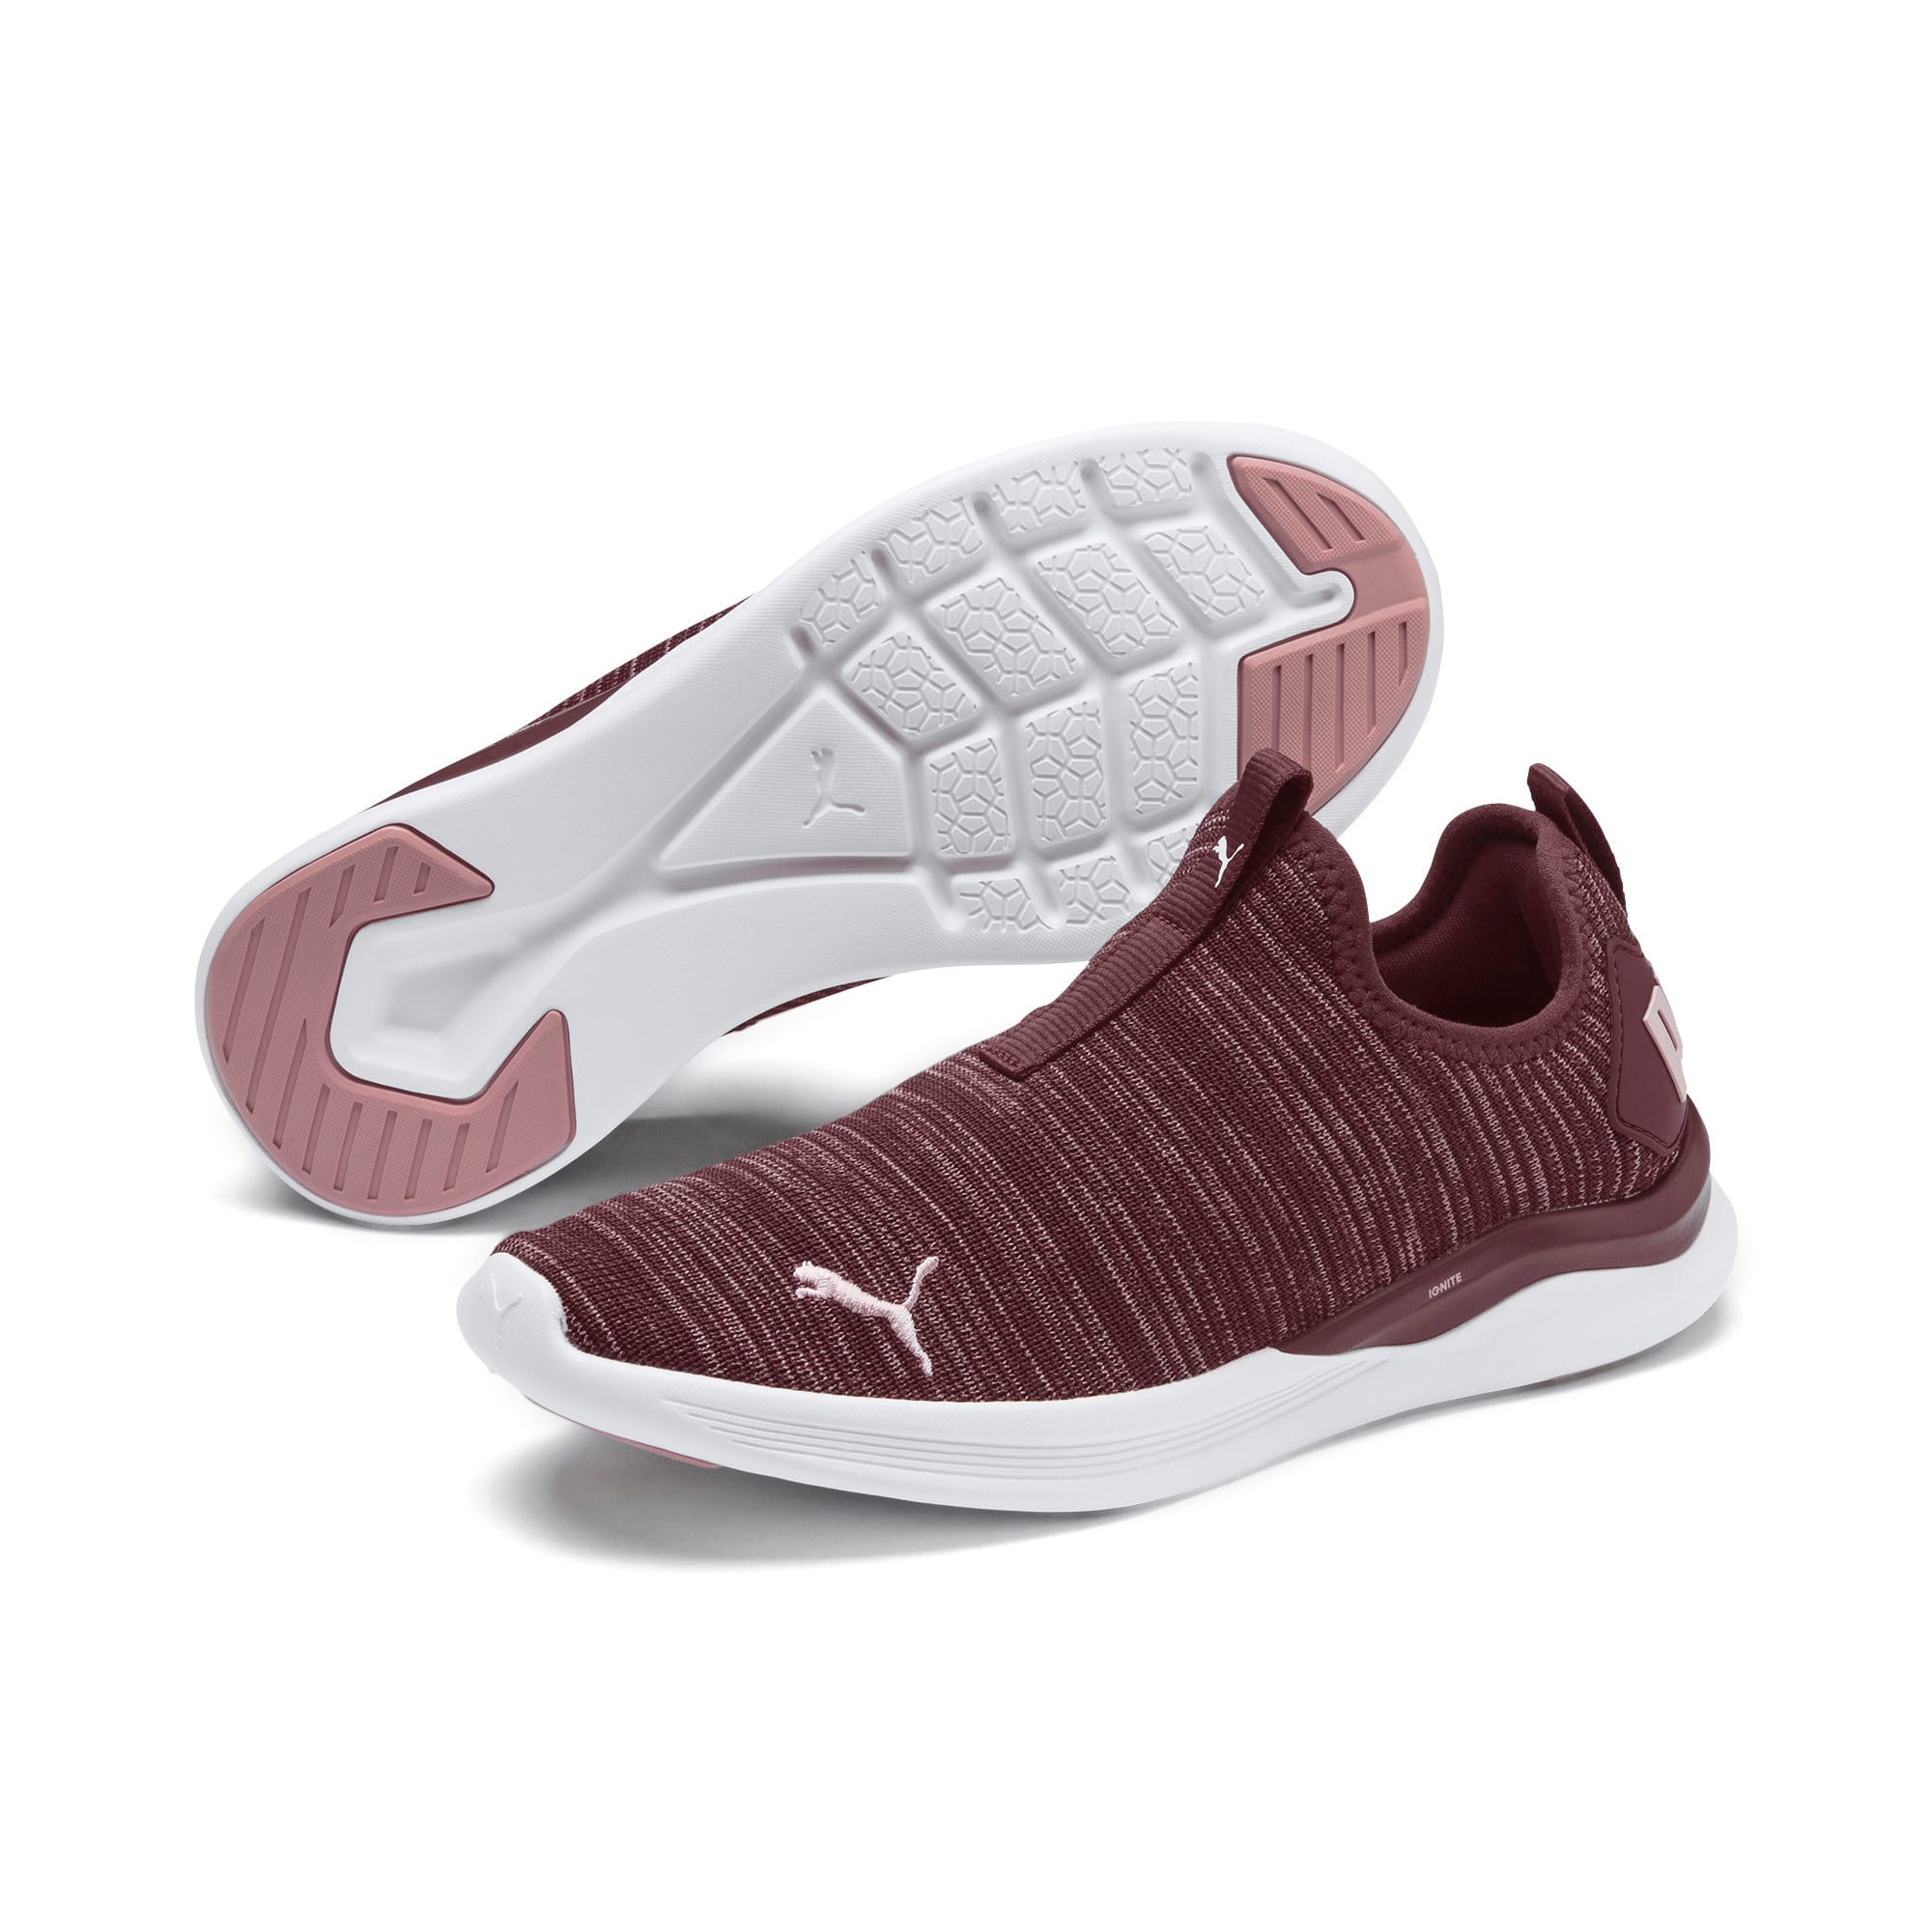 Thumbnail 2 of IGNITE Flash Summer Slip Women's Training Shoes, Vineyard Wine-Bridal Rose, medium